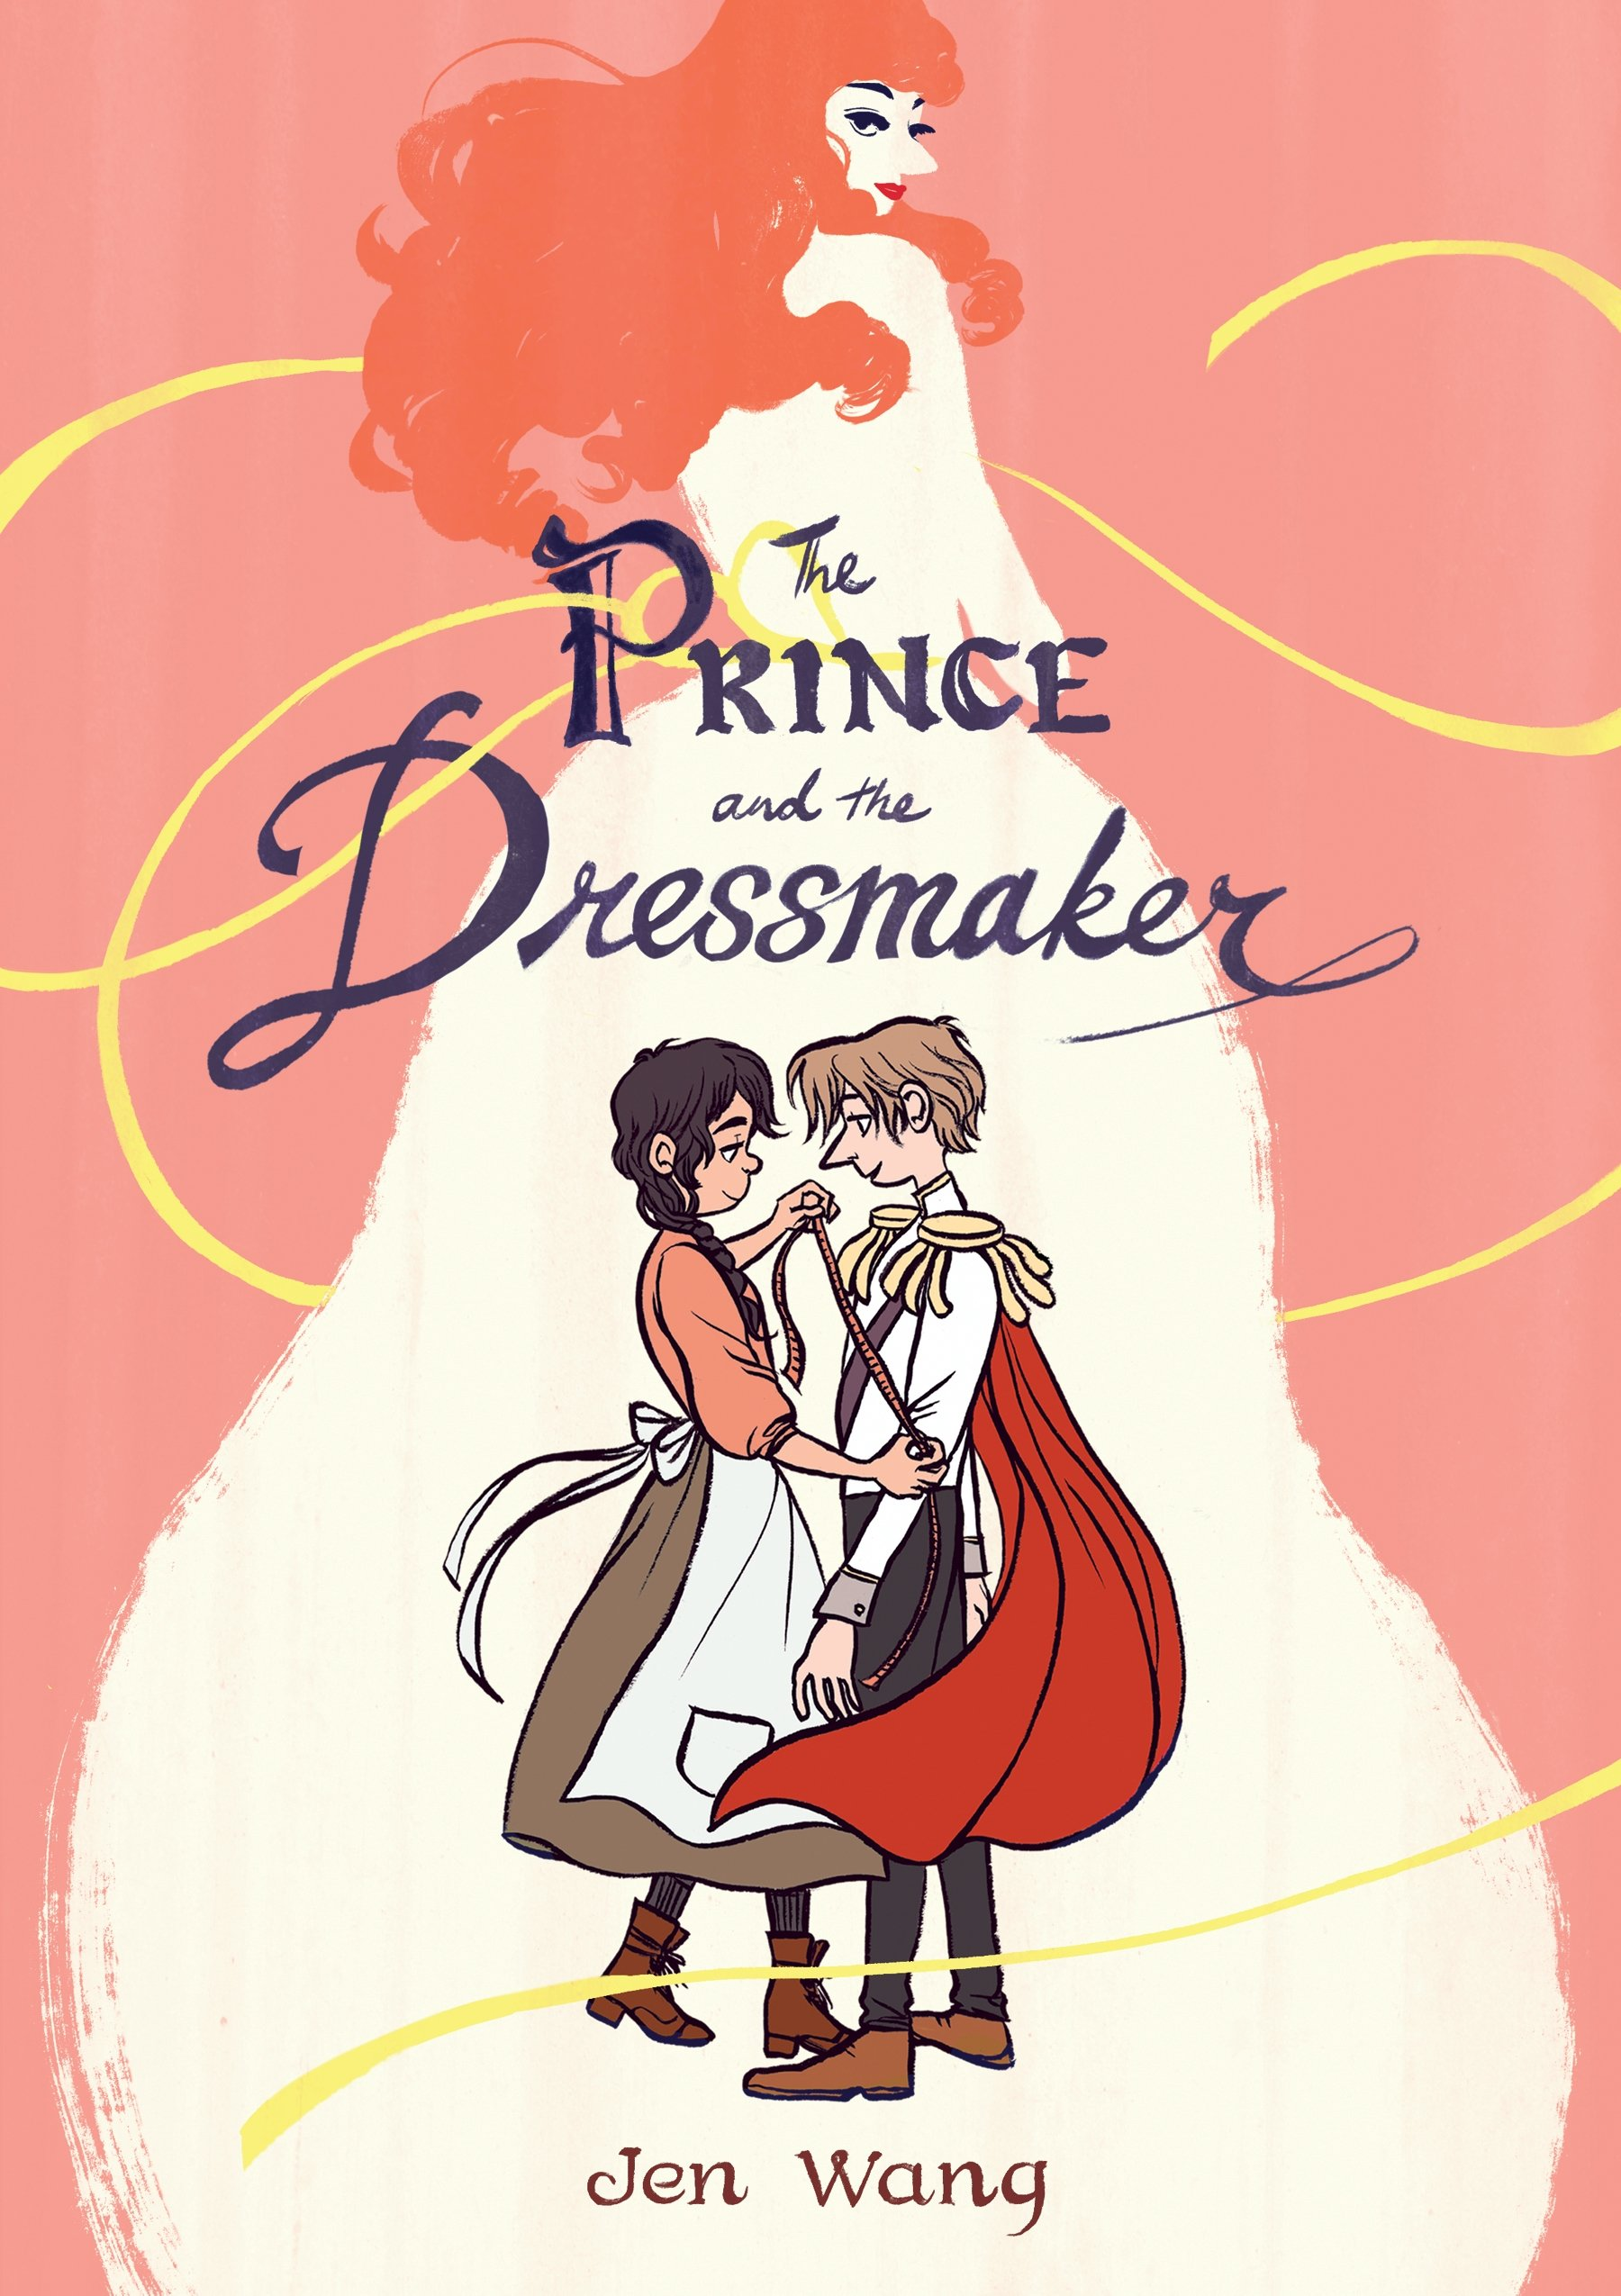 Amazon.com: The Prince and the Dressmaker (9781626723634): Wang ...